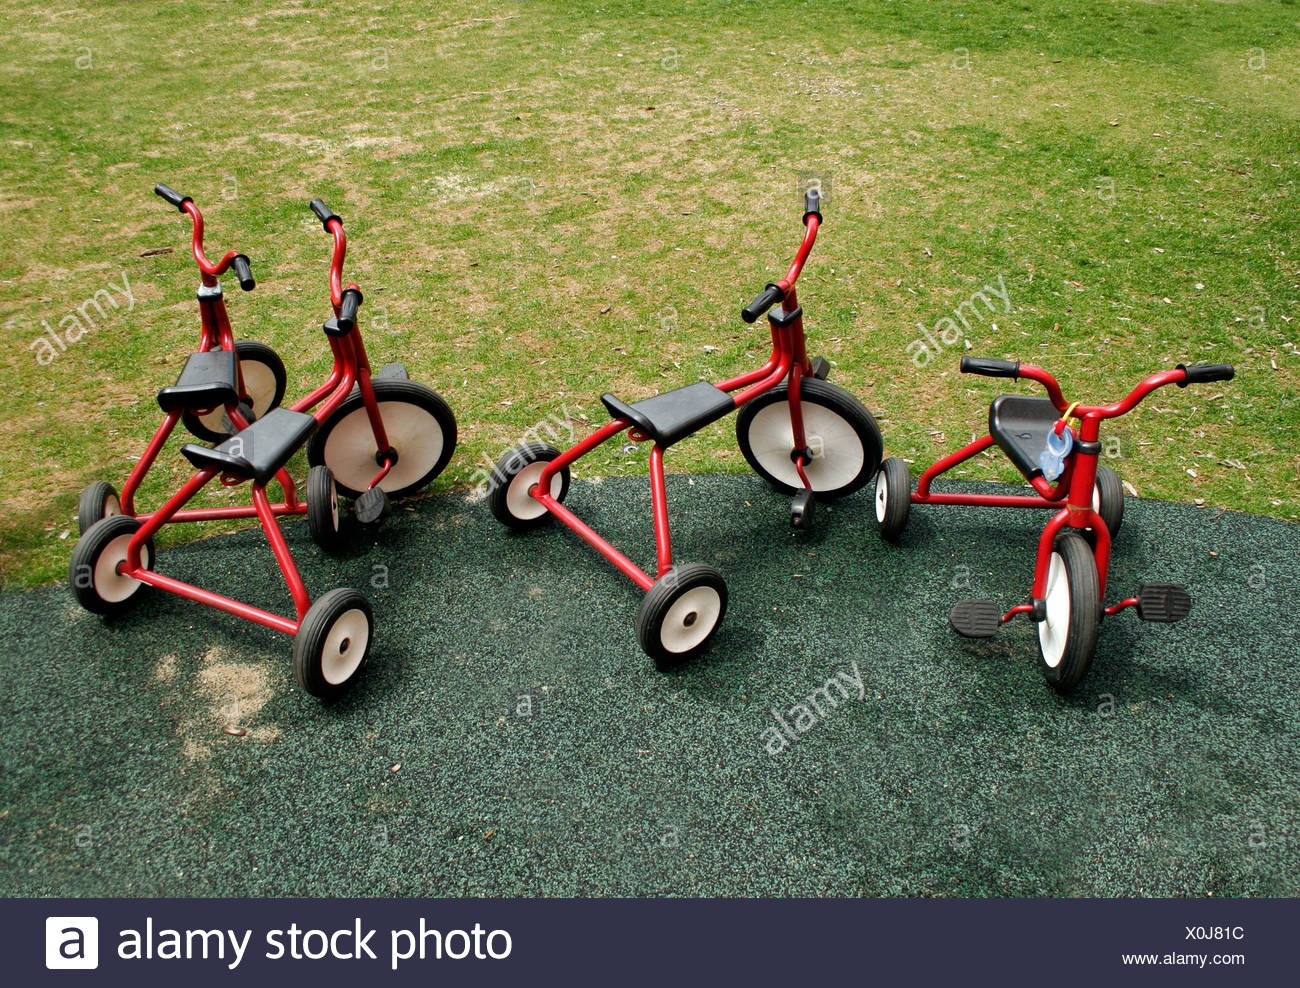 Tricycles - Stock Image